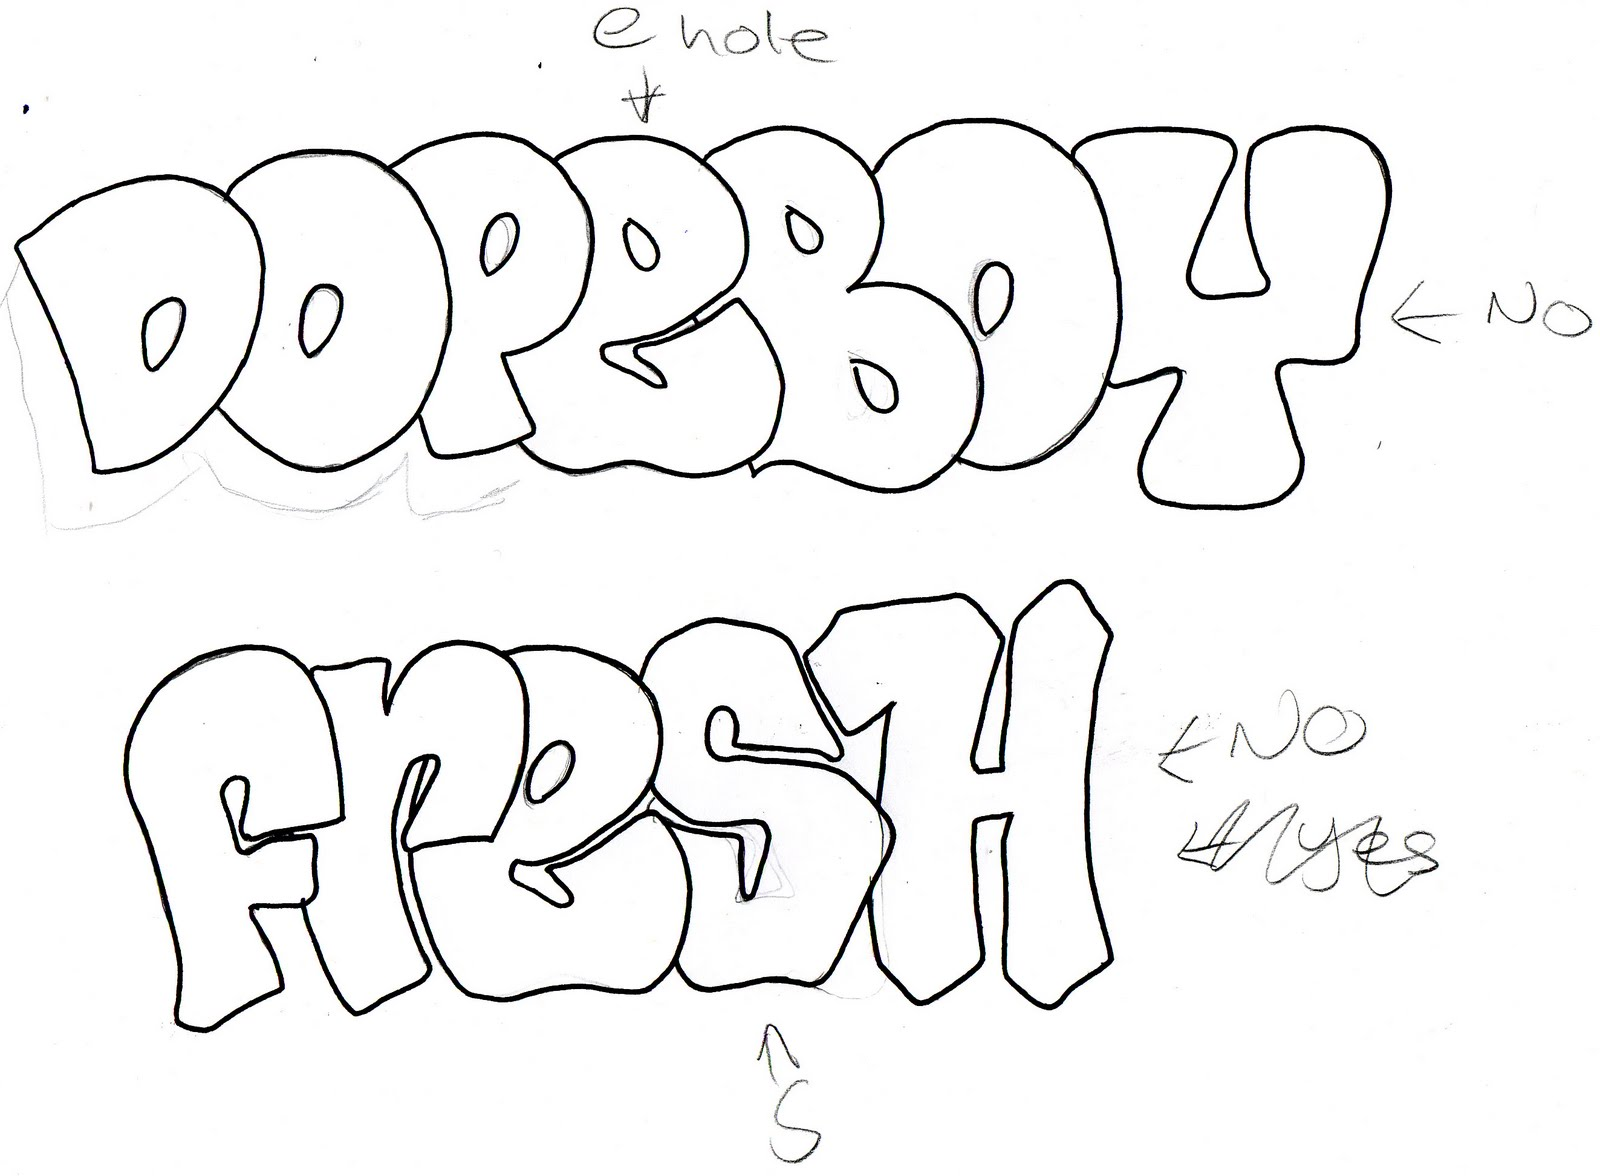 Dope Graffiti Coloring Pages Coloring Pages